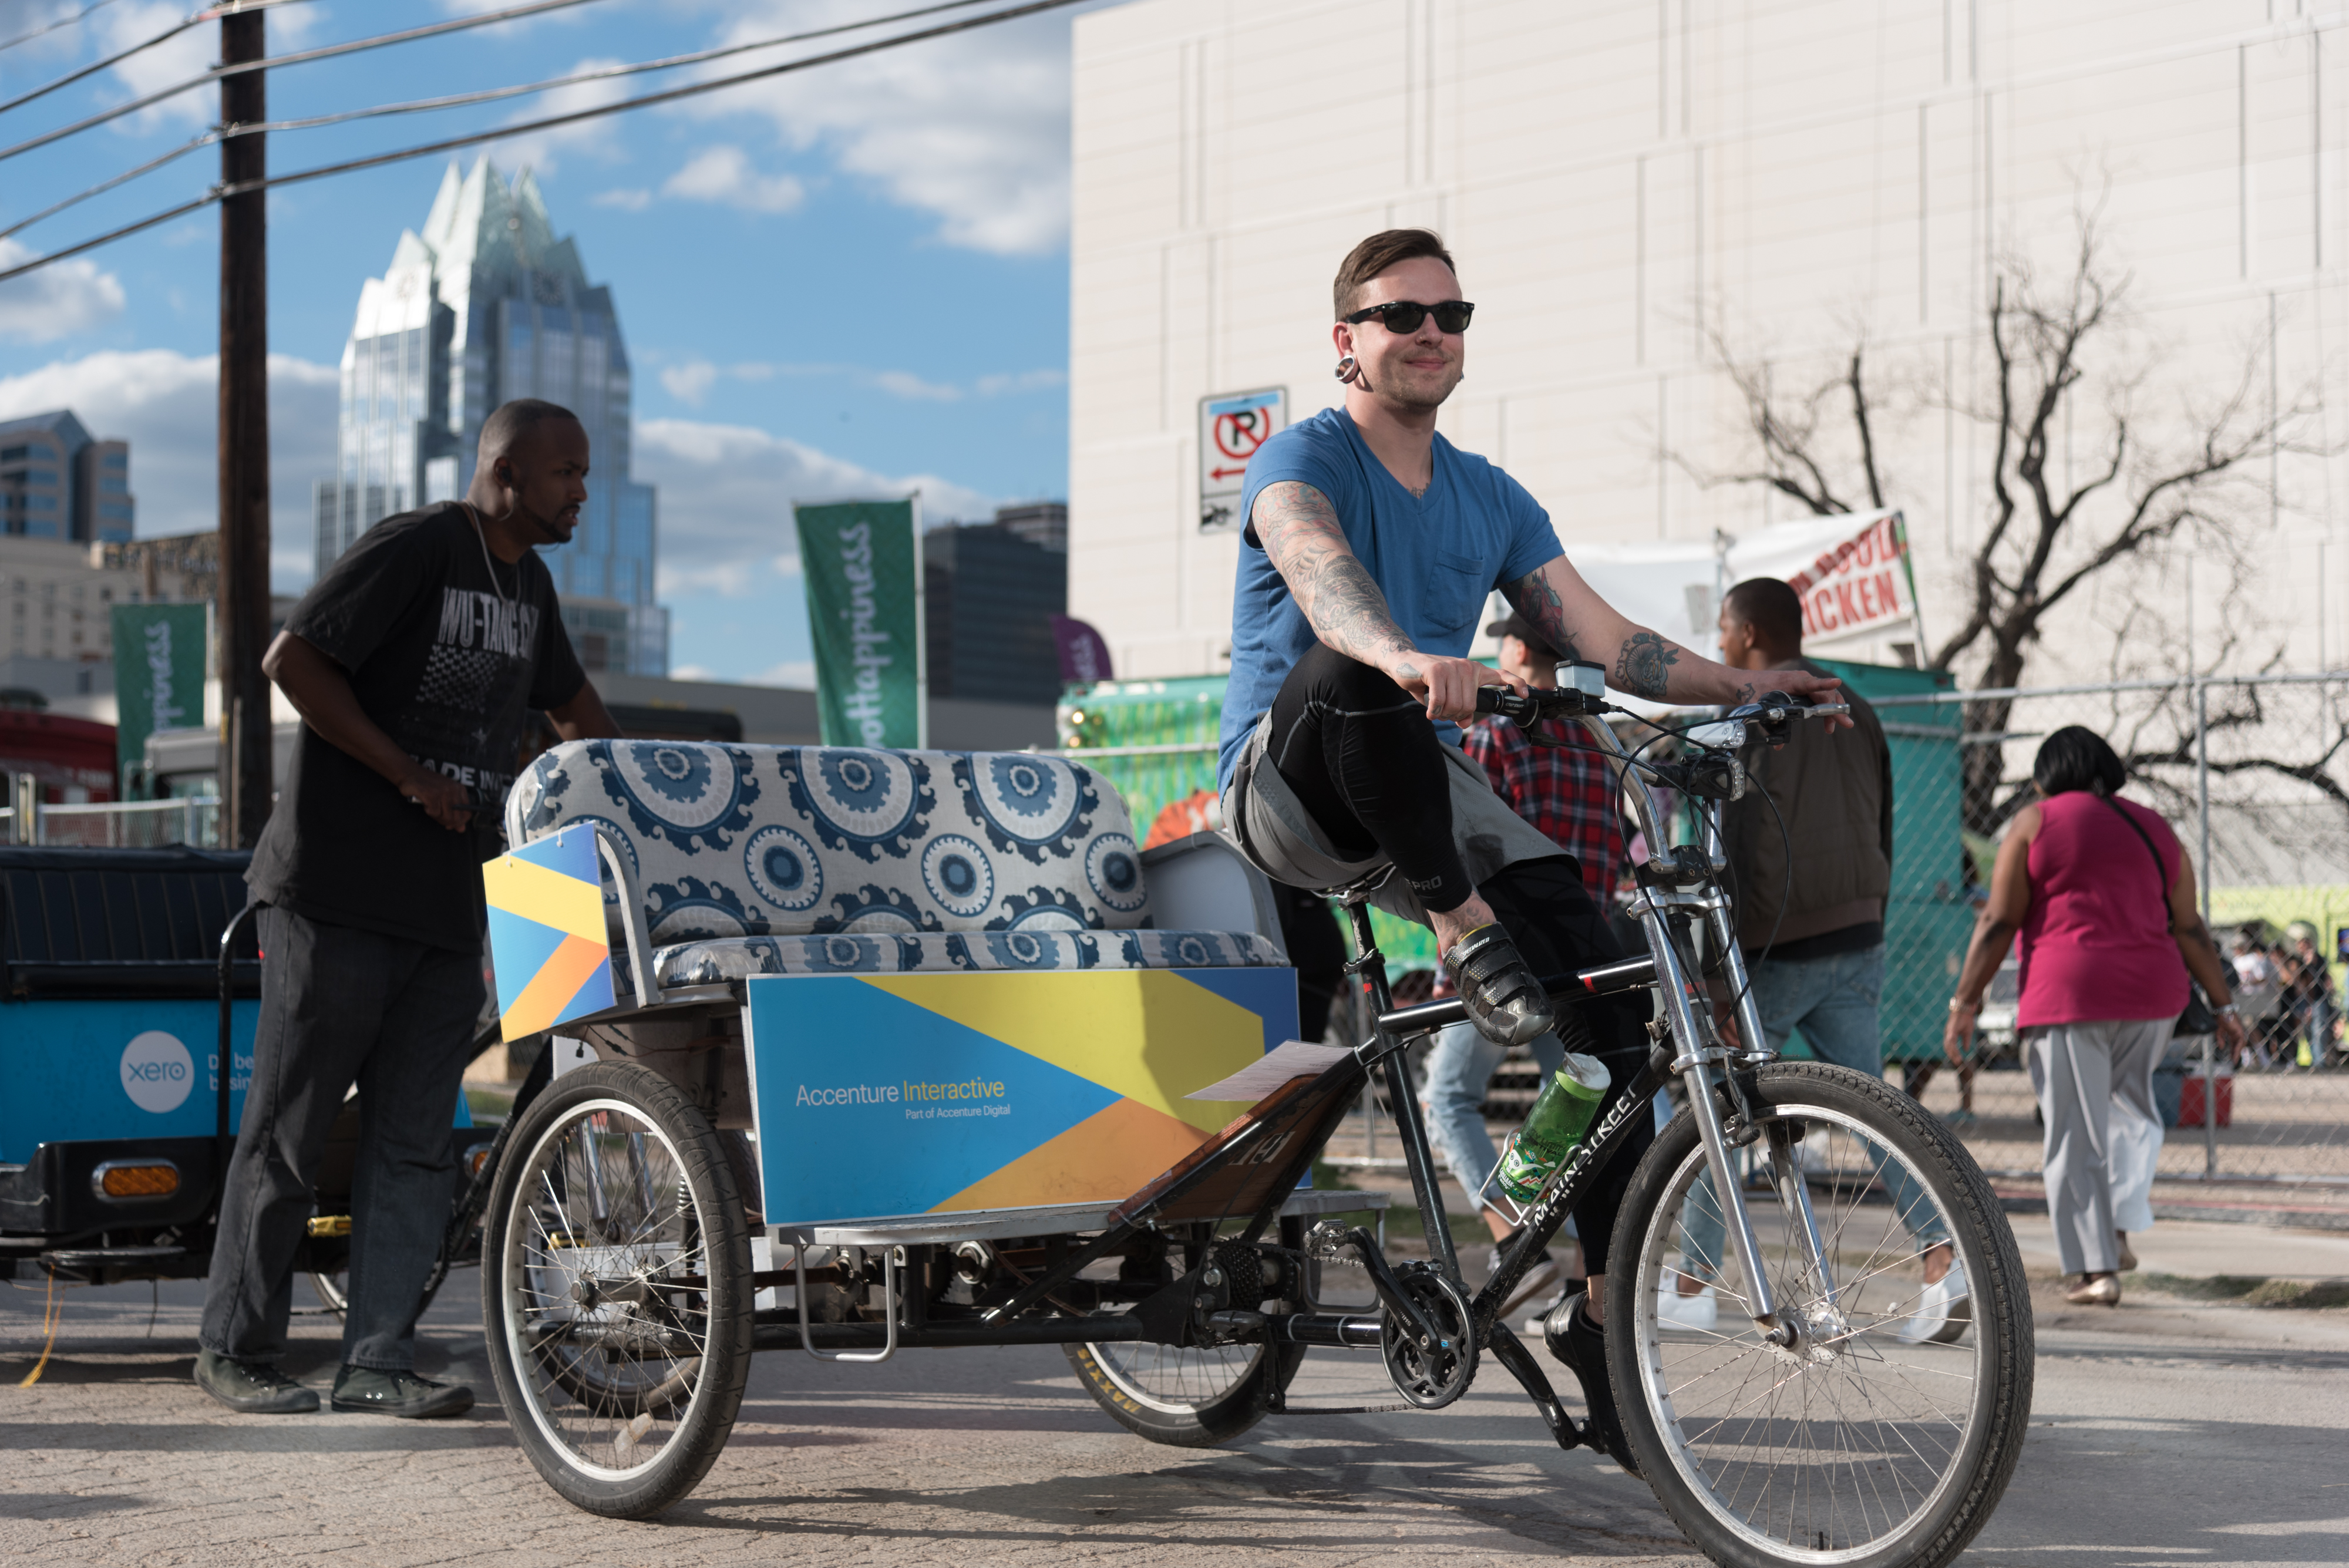 AUSTIN PEDICAB WINDOWS 8 X64 DRIVER DOWNLOAD